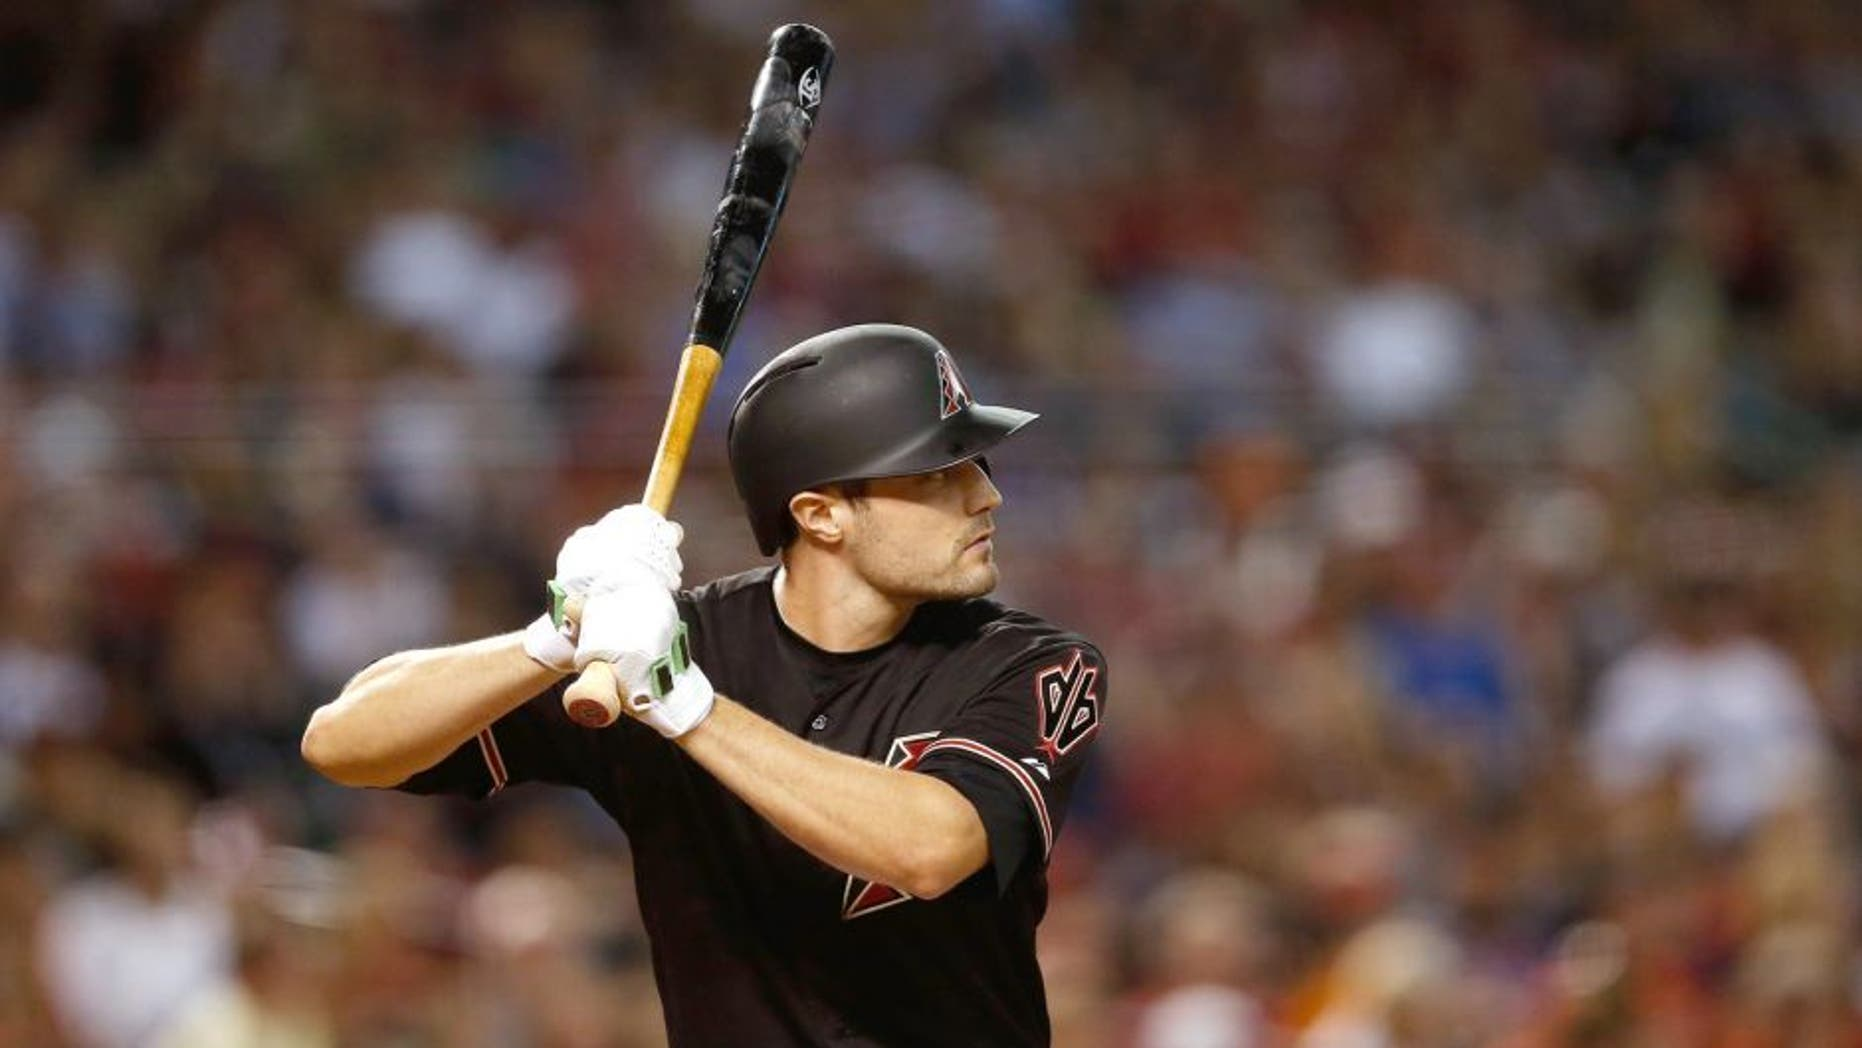 PHOENIX, AZ - JULY 18: A.J. Pollock #11 of the Arizona Diamondbacks bats against the San Francisco Giants during the MLB game at Chase Field on July 18, 2015 in Phoenix, Arizona. The Giants defeated the Diamondbacks 8-4. (Photo by Christian Petersen/Getty Images)